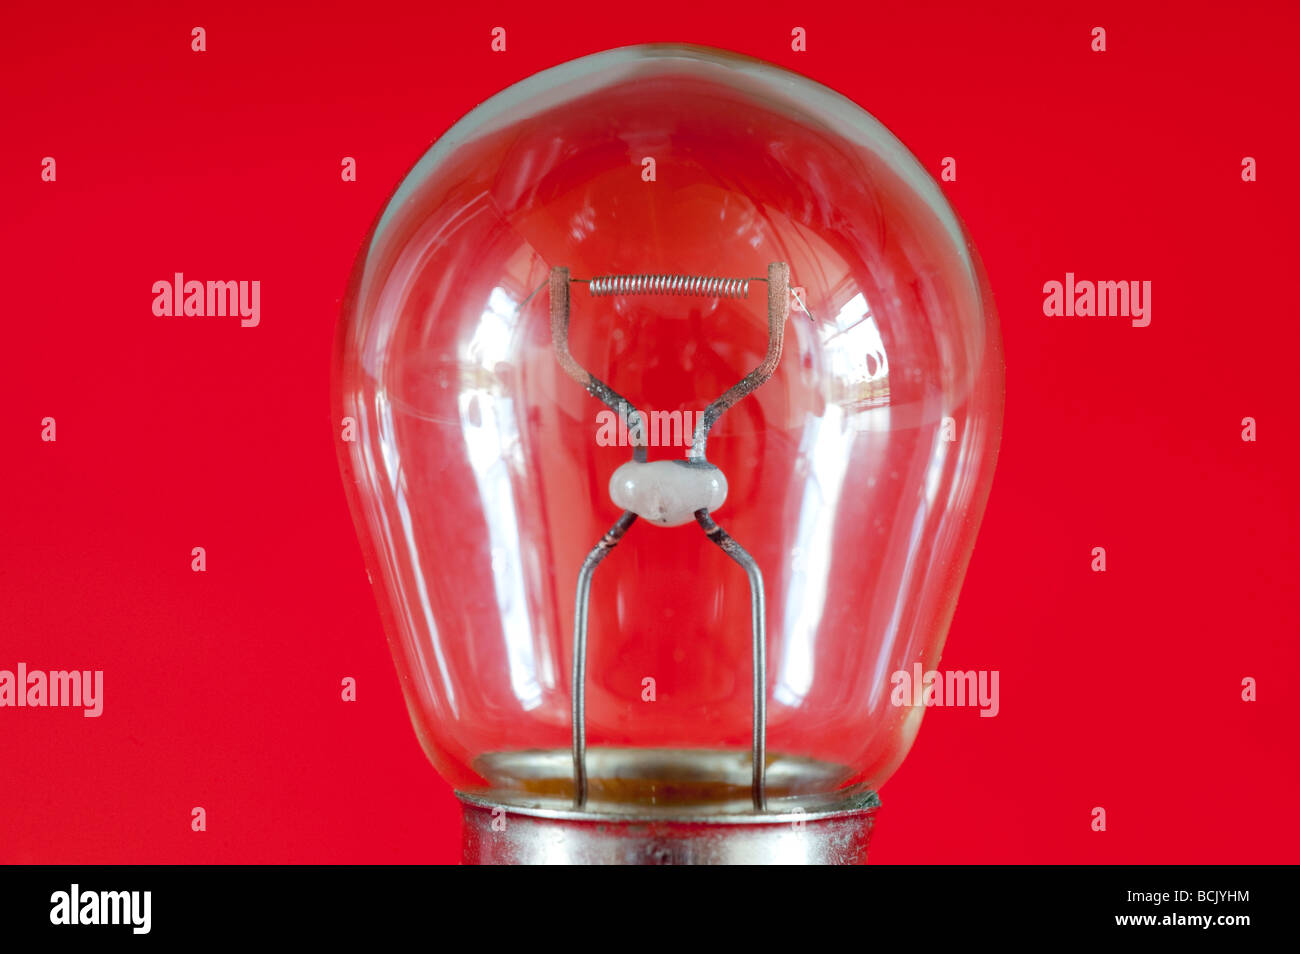 Electric coil filament in a small 12volt bulb - Stock Image